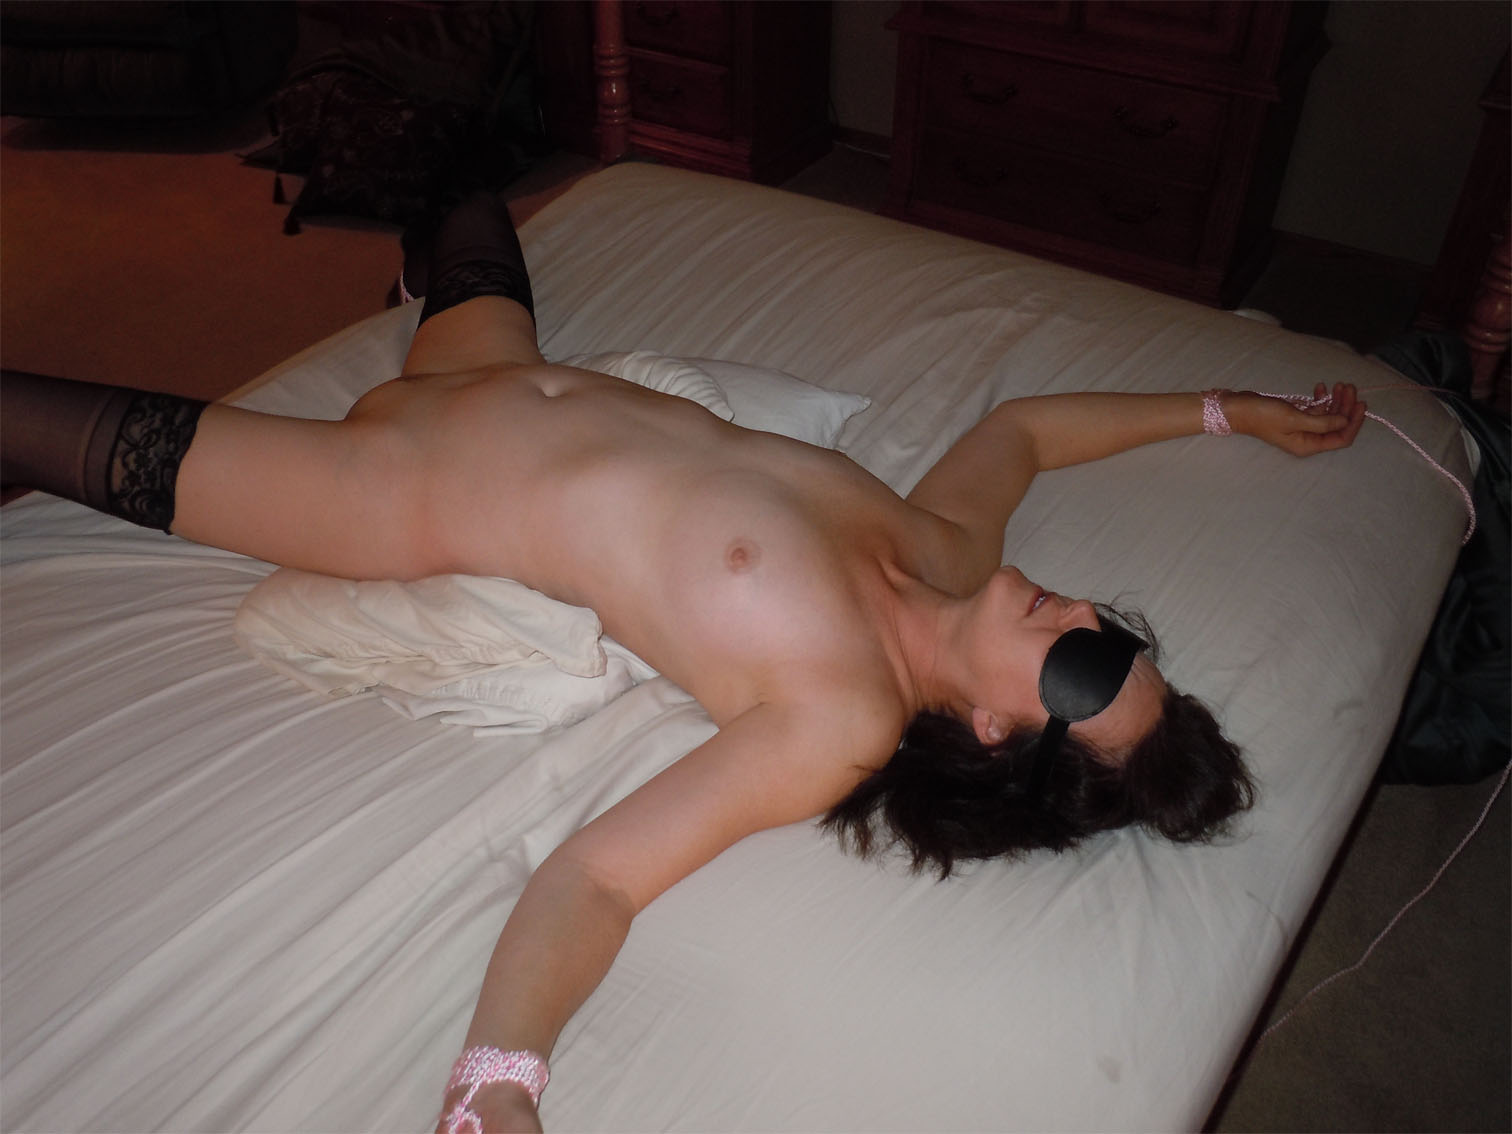 You Amateur wife first blindfold threesome right! Idea